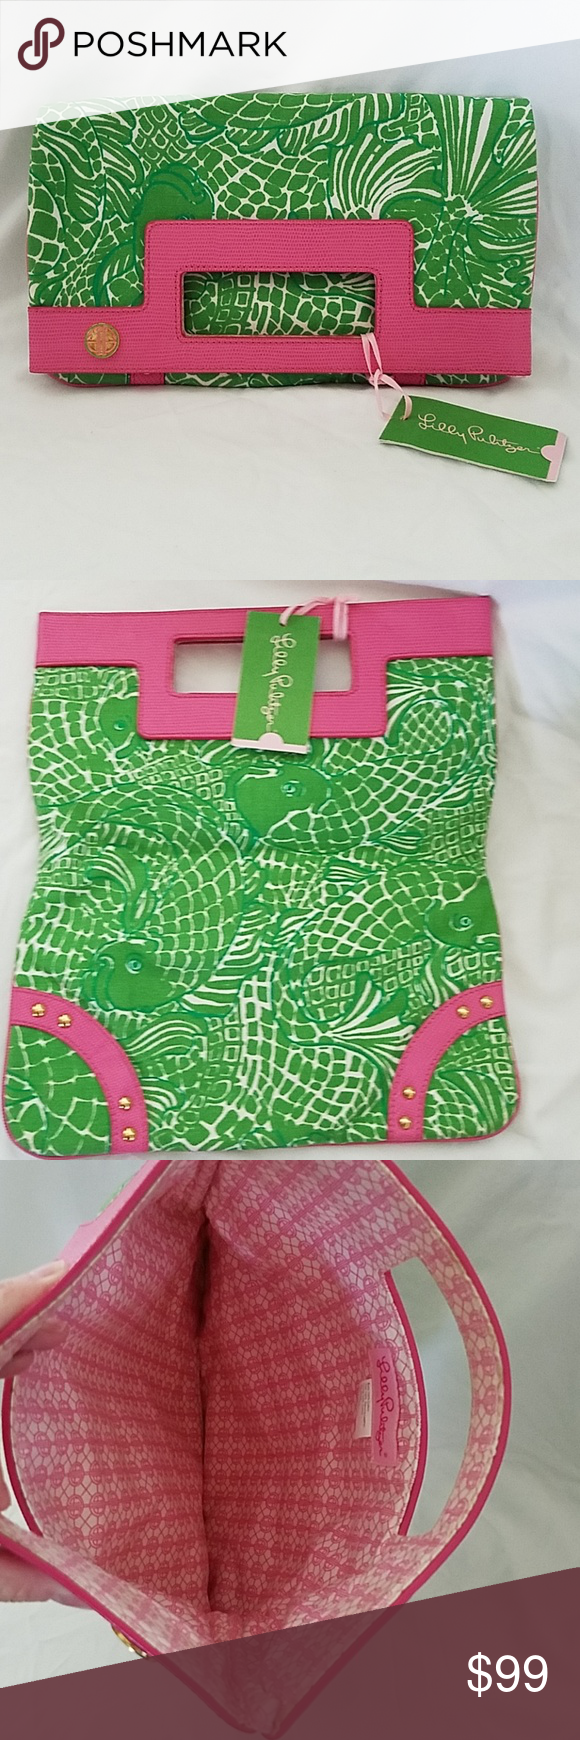 Lilly Pulitzee Pack it Up Marco Polo Purse NWT